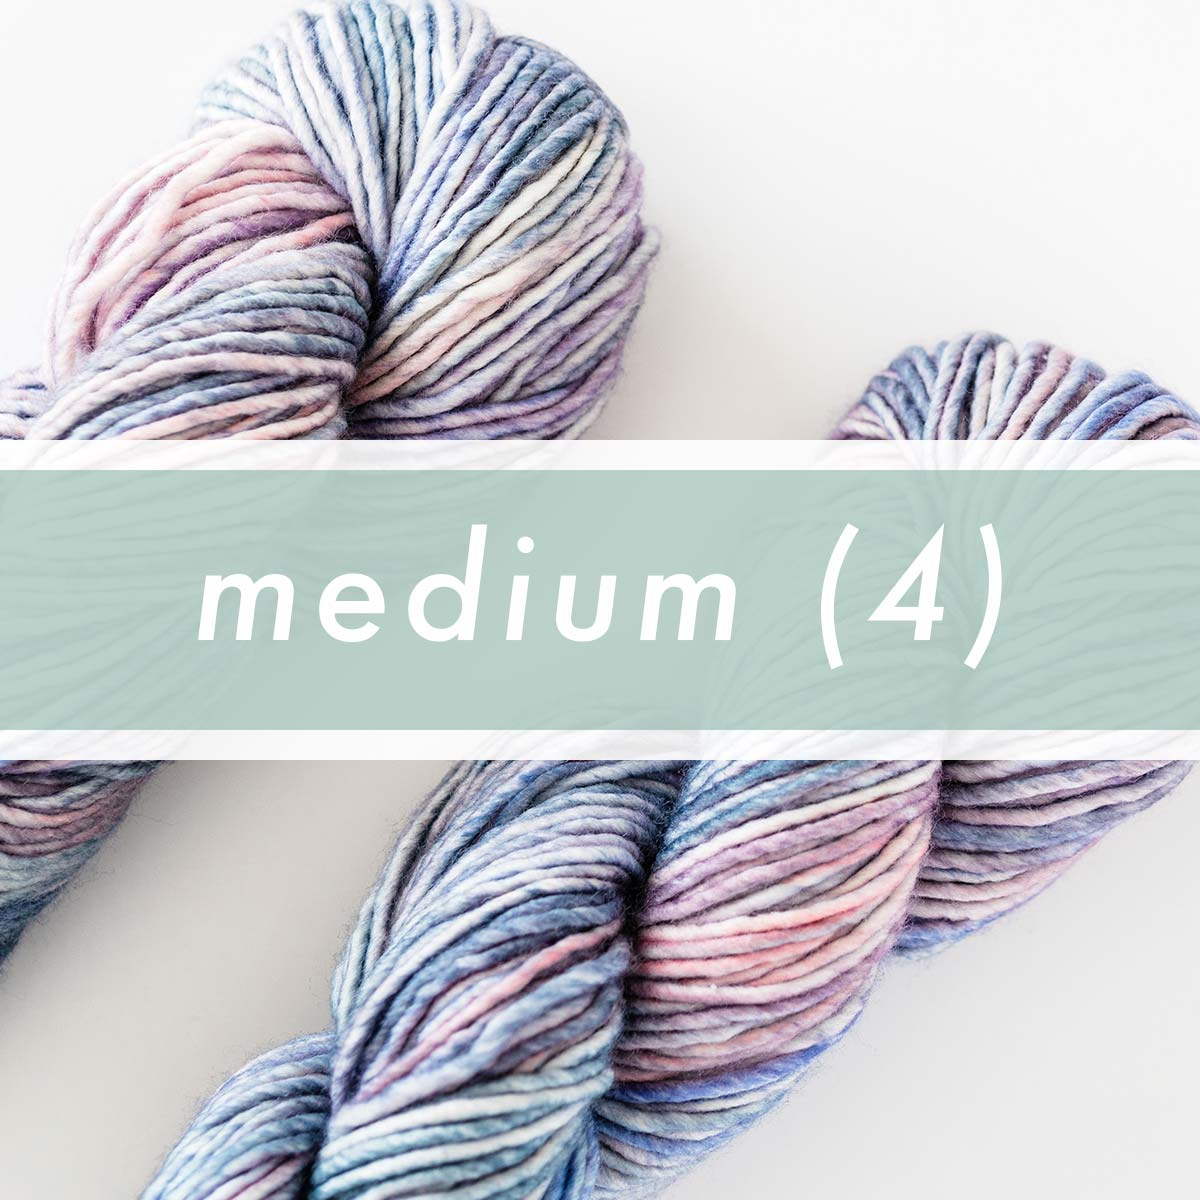 Medium (4) / Worsted / Aran / 10ply Yarn Crochet Projects